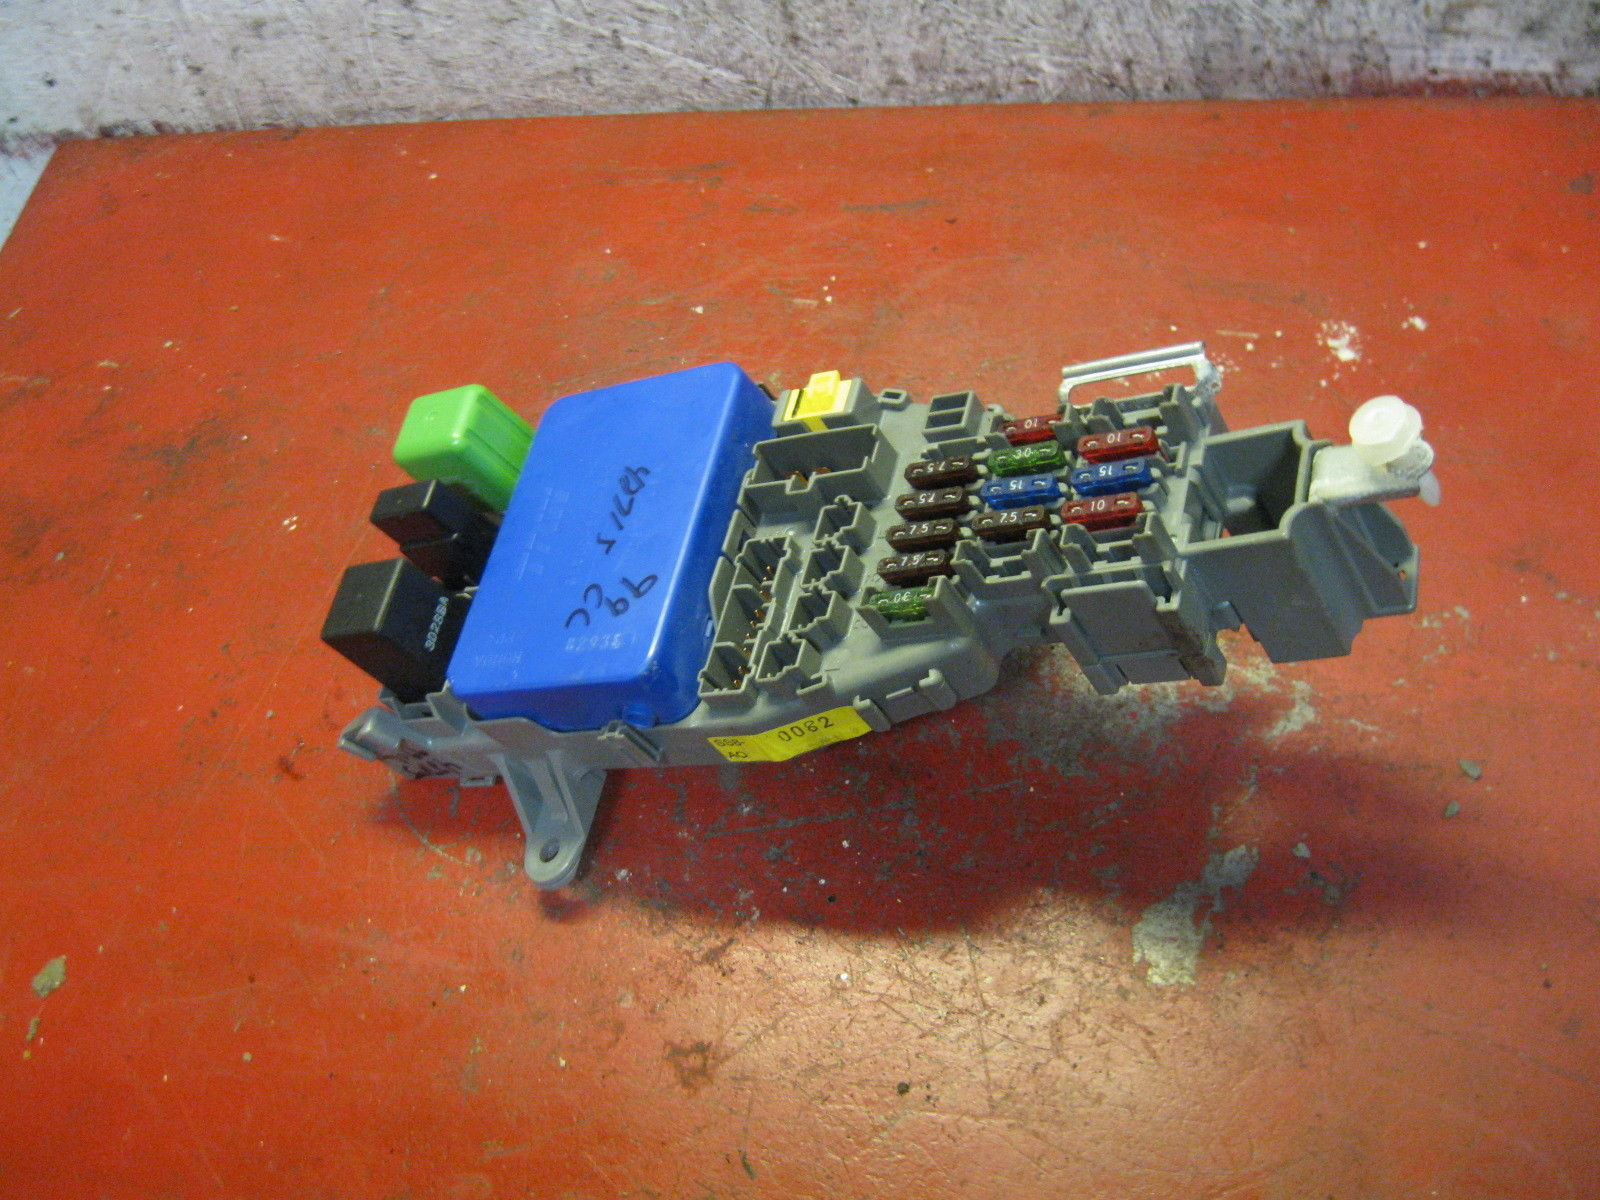 ... 98 99 97 Acura CL interior fuse box panel 38600-su7-a12